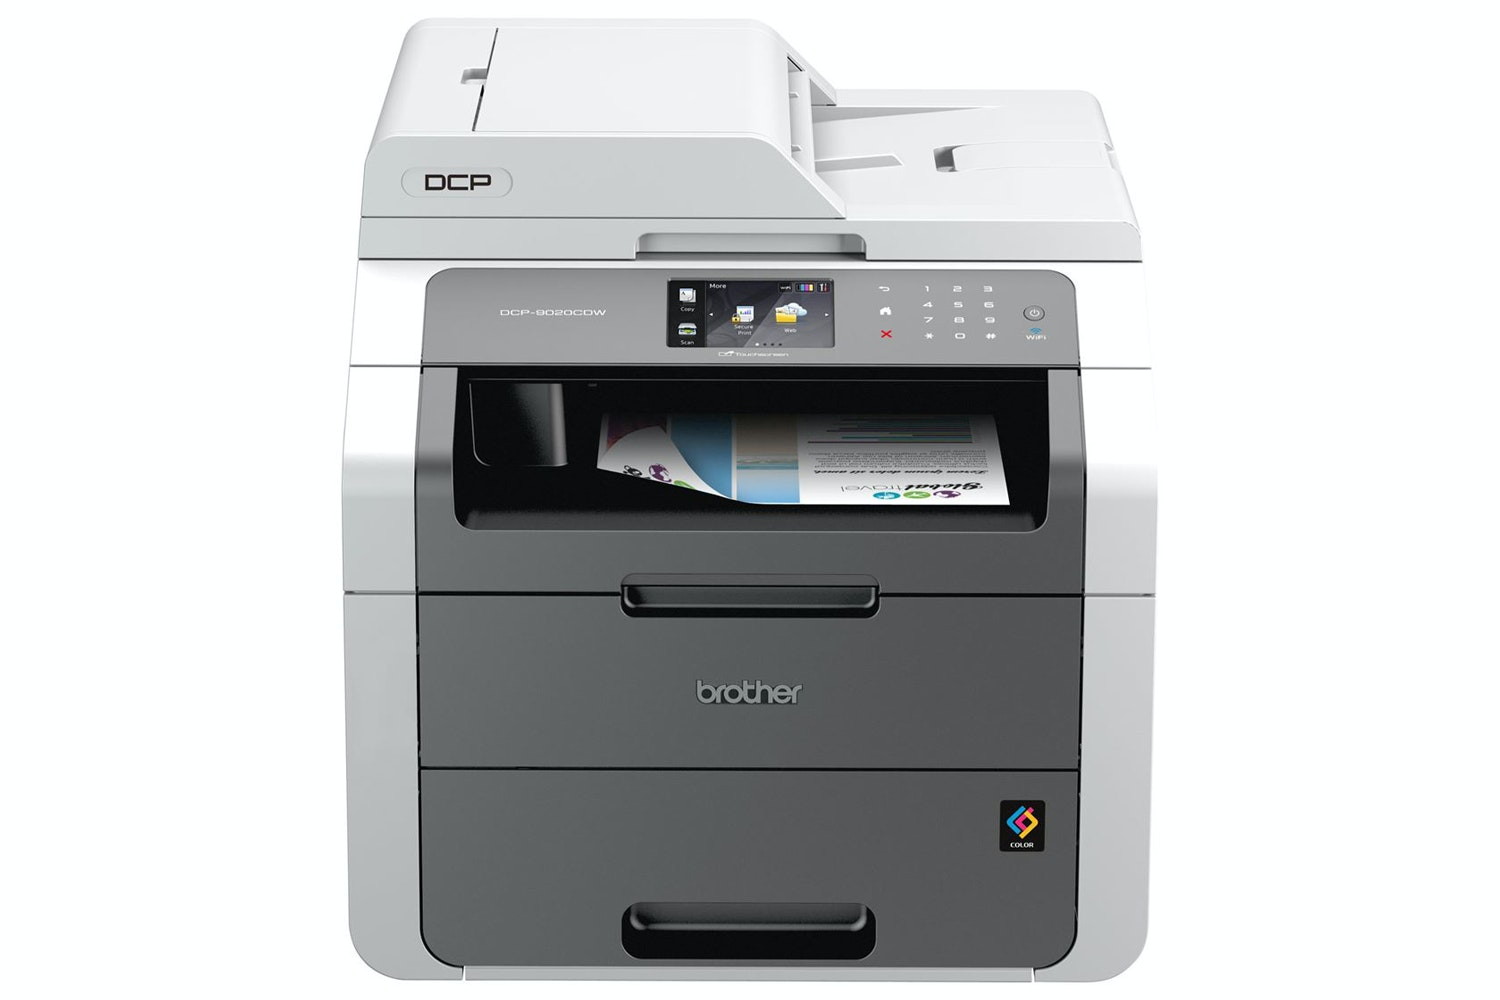 Brother Multifunction Printer | DCP9020CDW